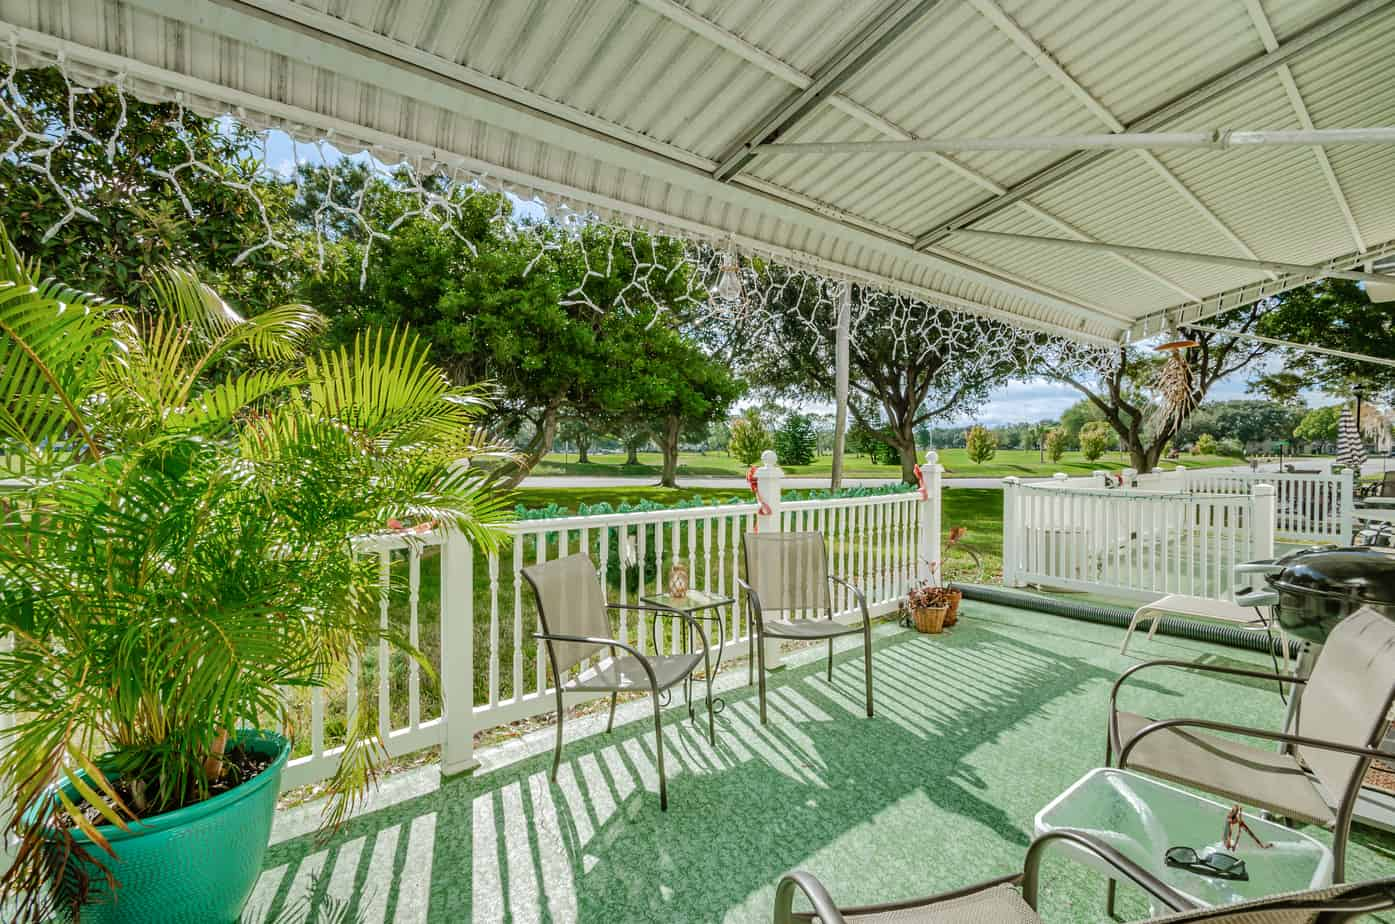 15-2285-Israeli-Dr-#17-Clearwater-Fl-33763-Patio3